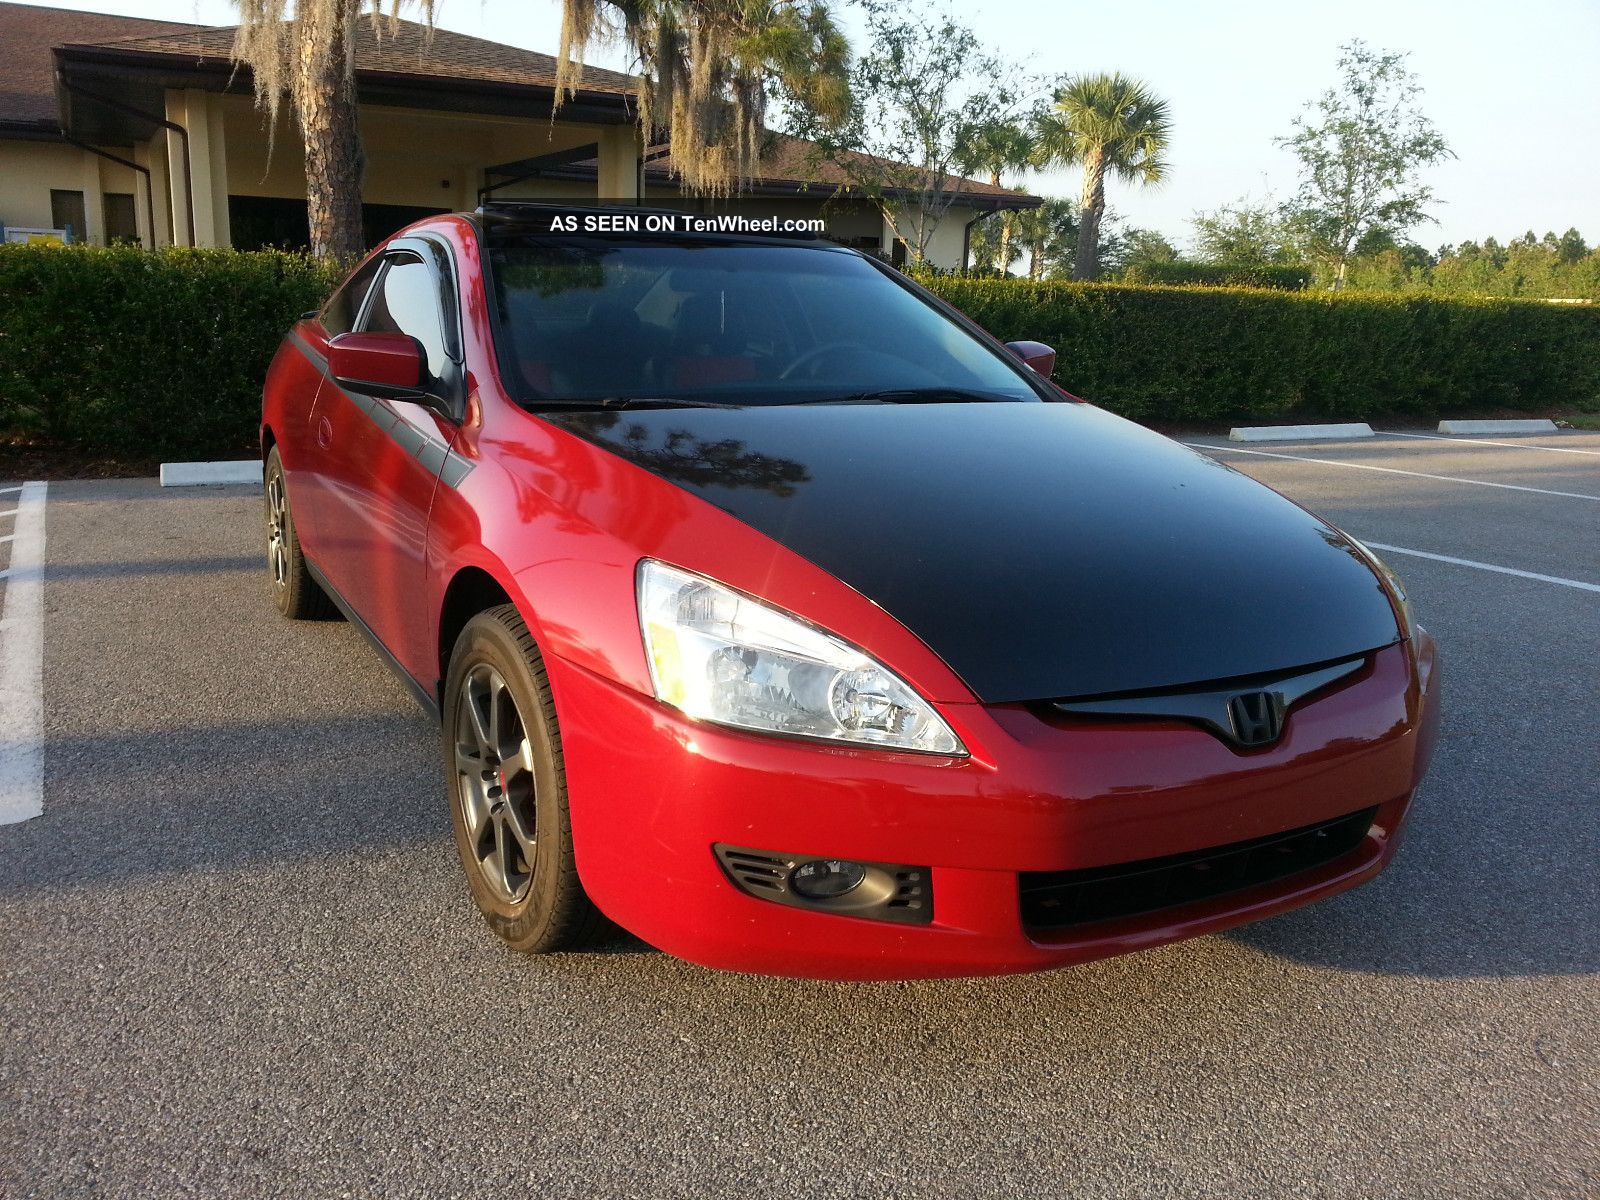 2004 honda accord 2dr coupe custom made miami heat colors. Black Bedroom Furniture Sets. Home Design Ideas